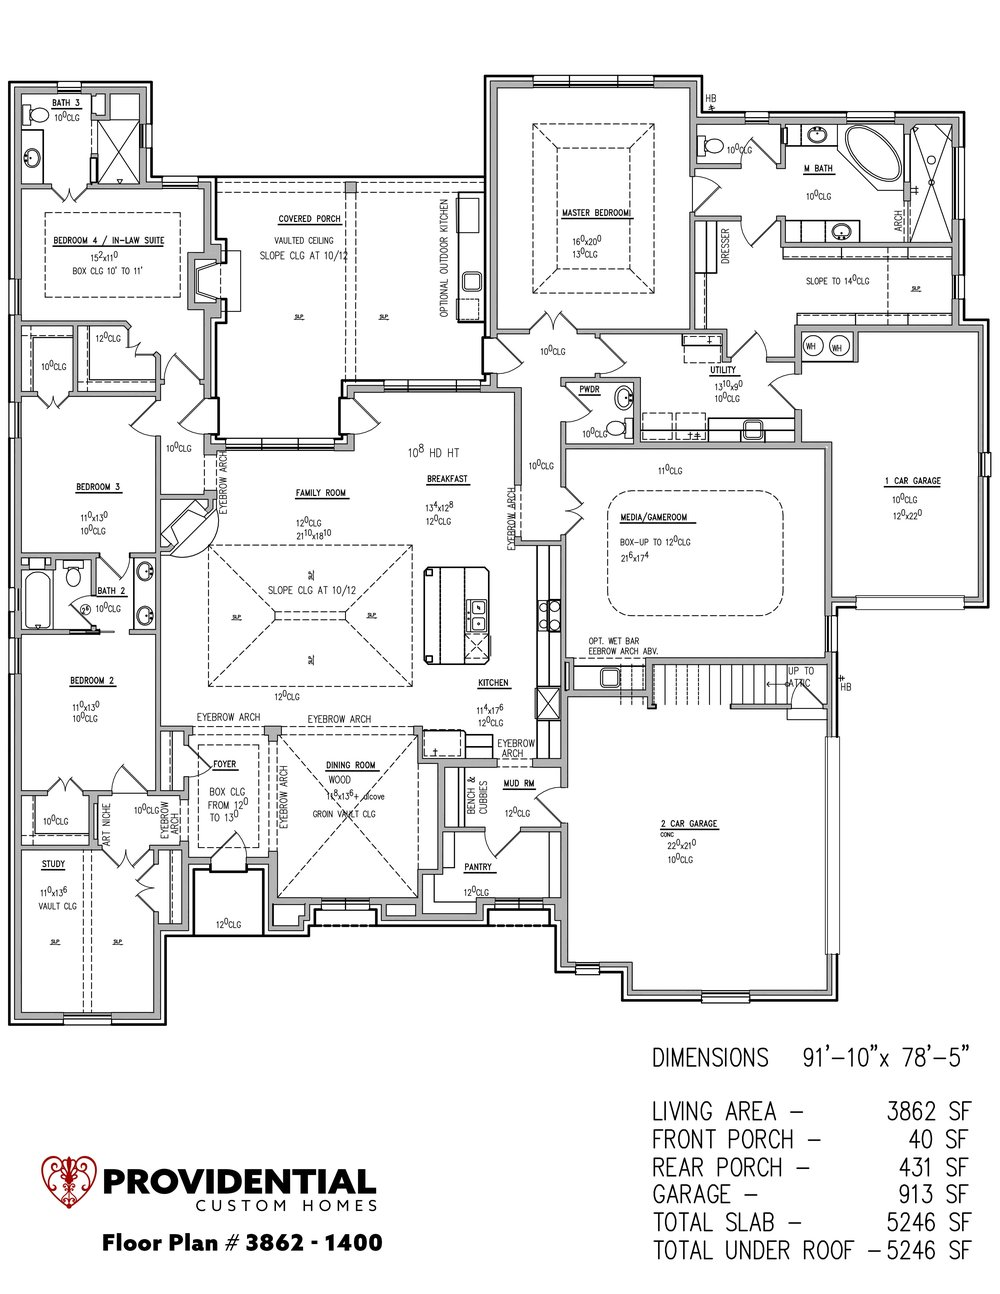 The FLOOR PLAN #3862 - 1400.jpg